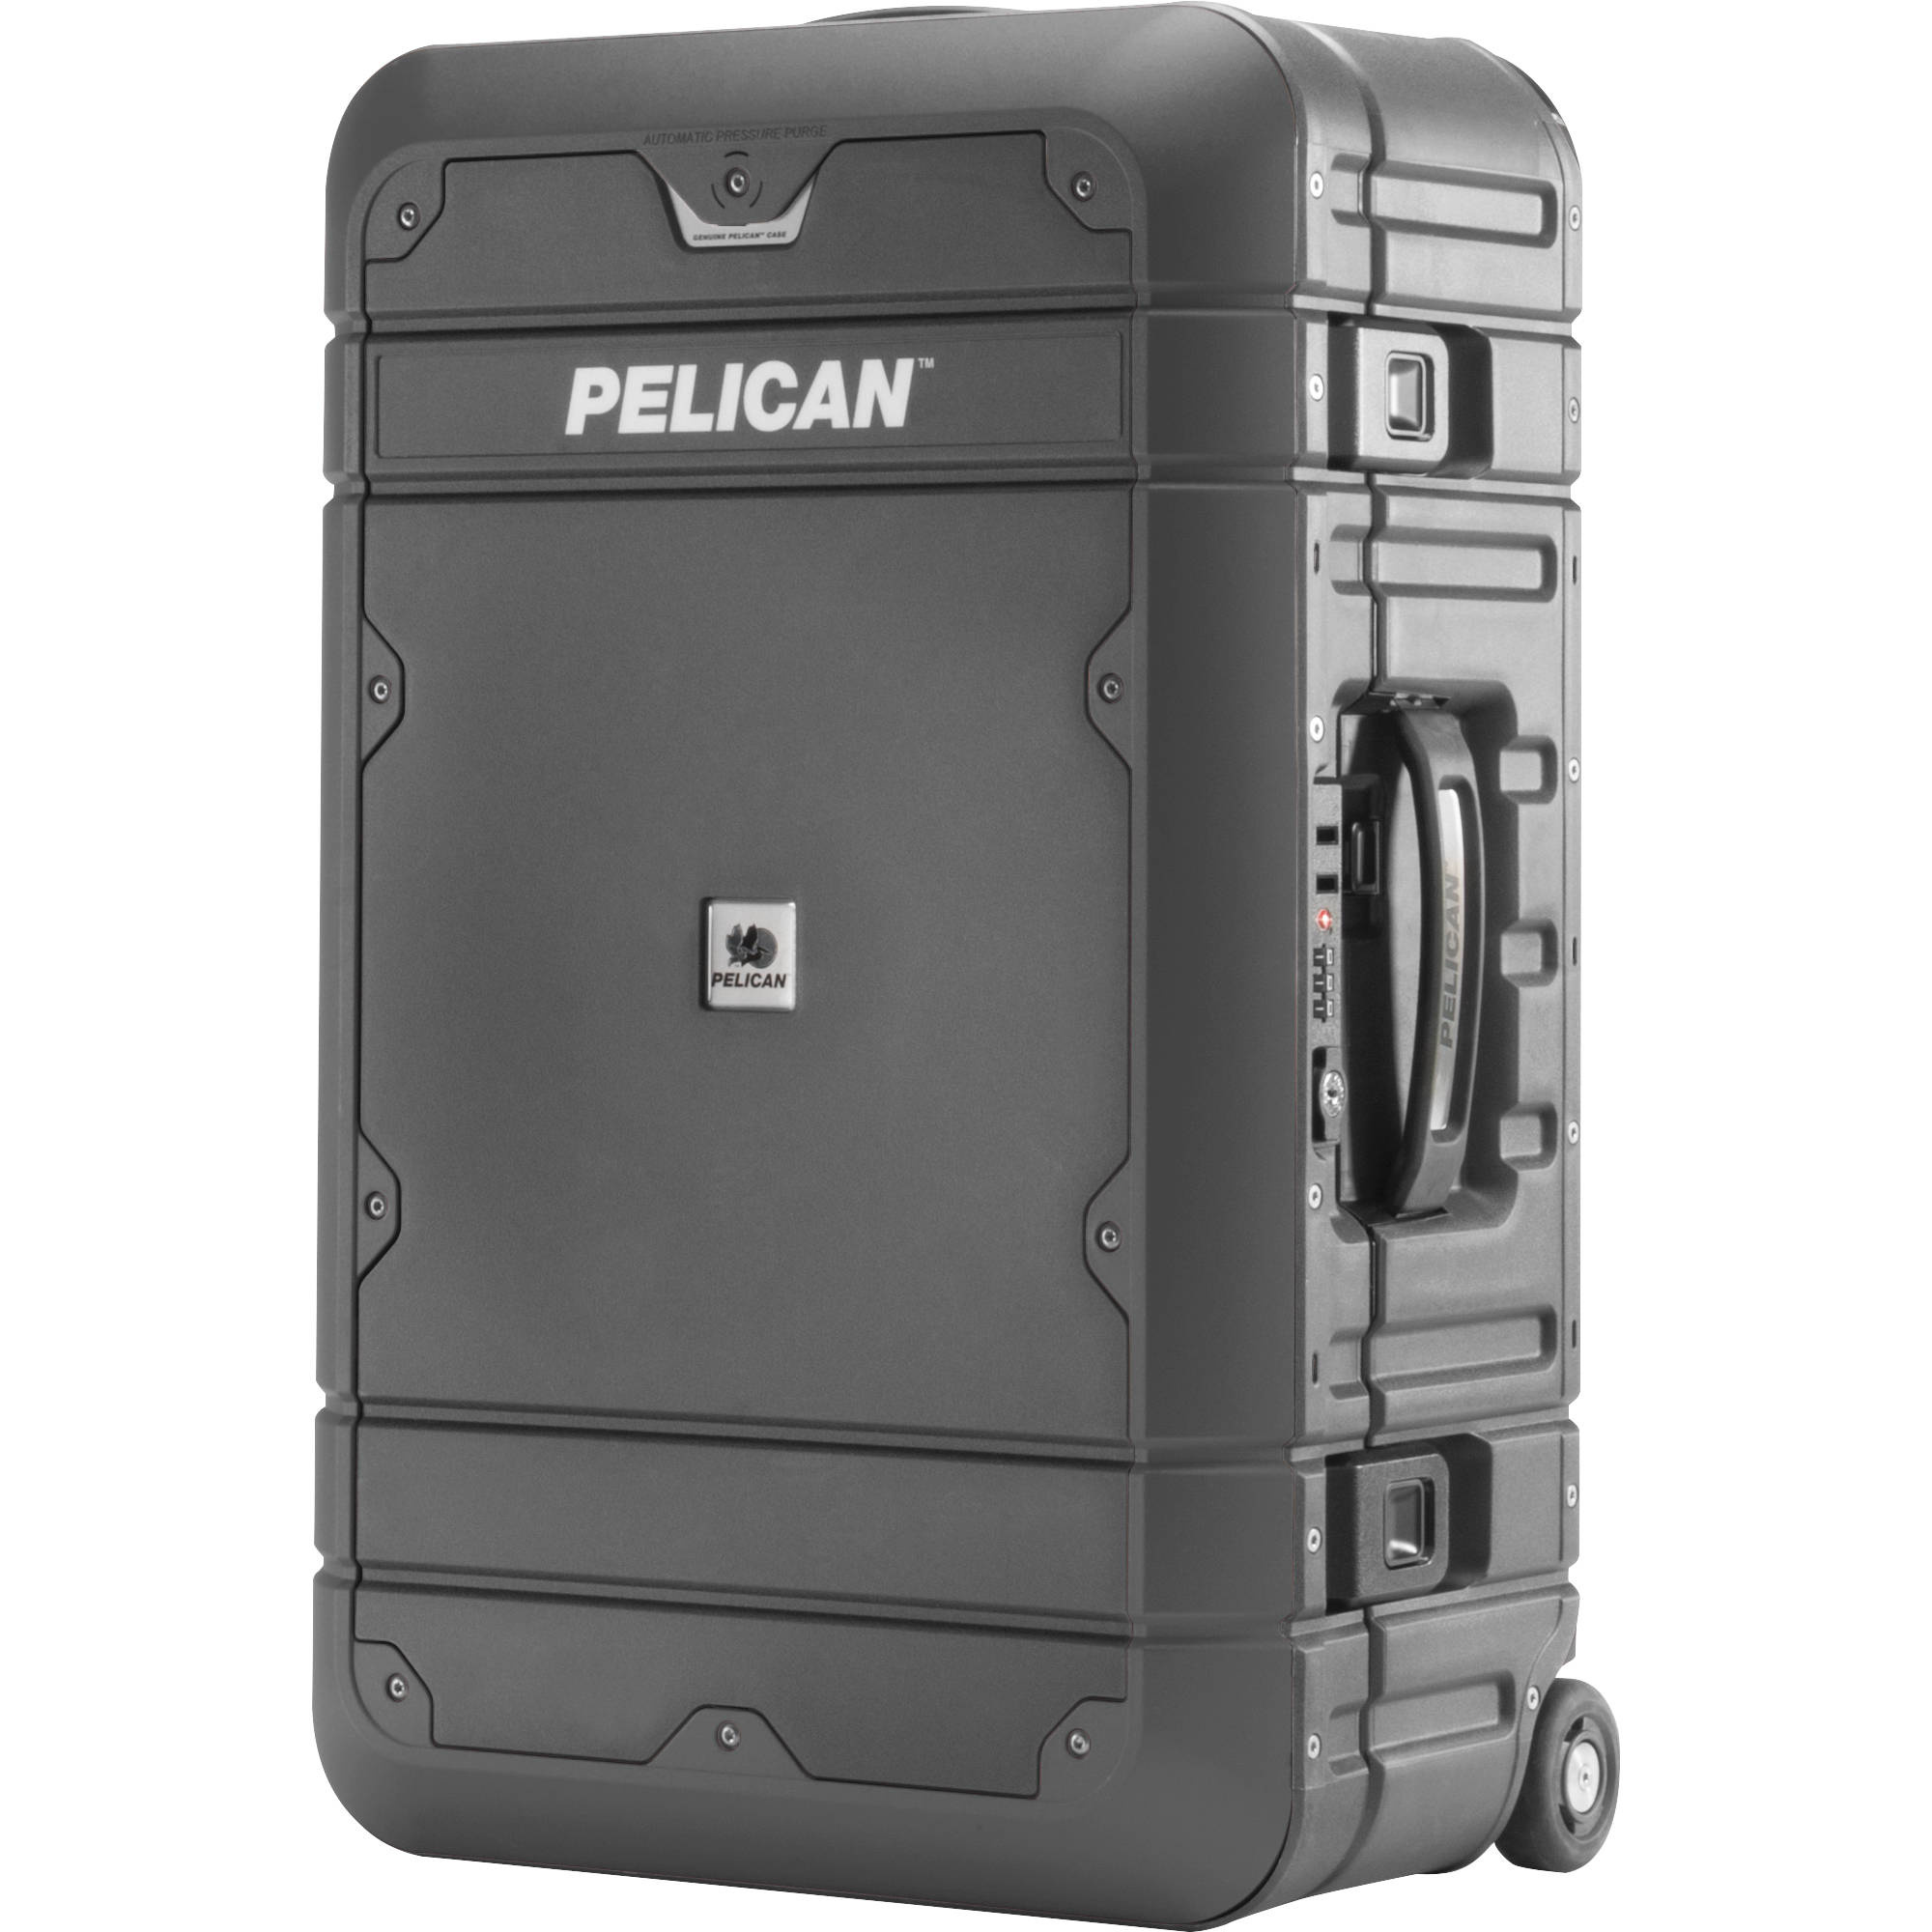 Pelican BA22 Elite Carry-On Luggage  (Grey with Black)